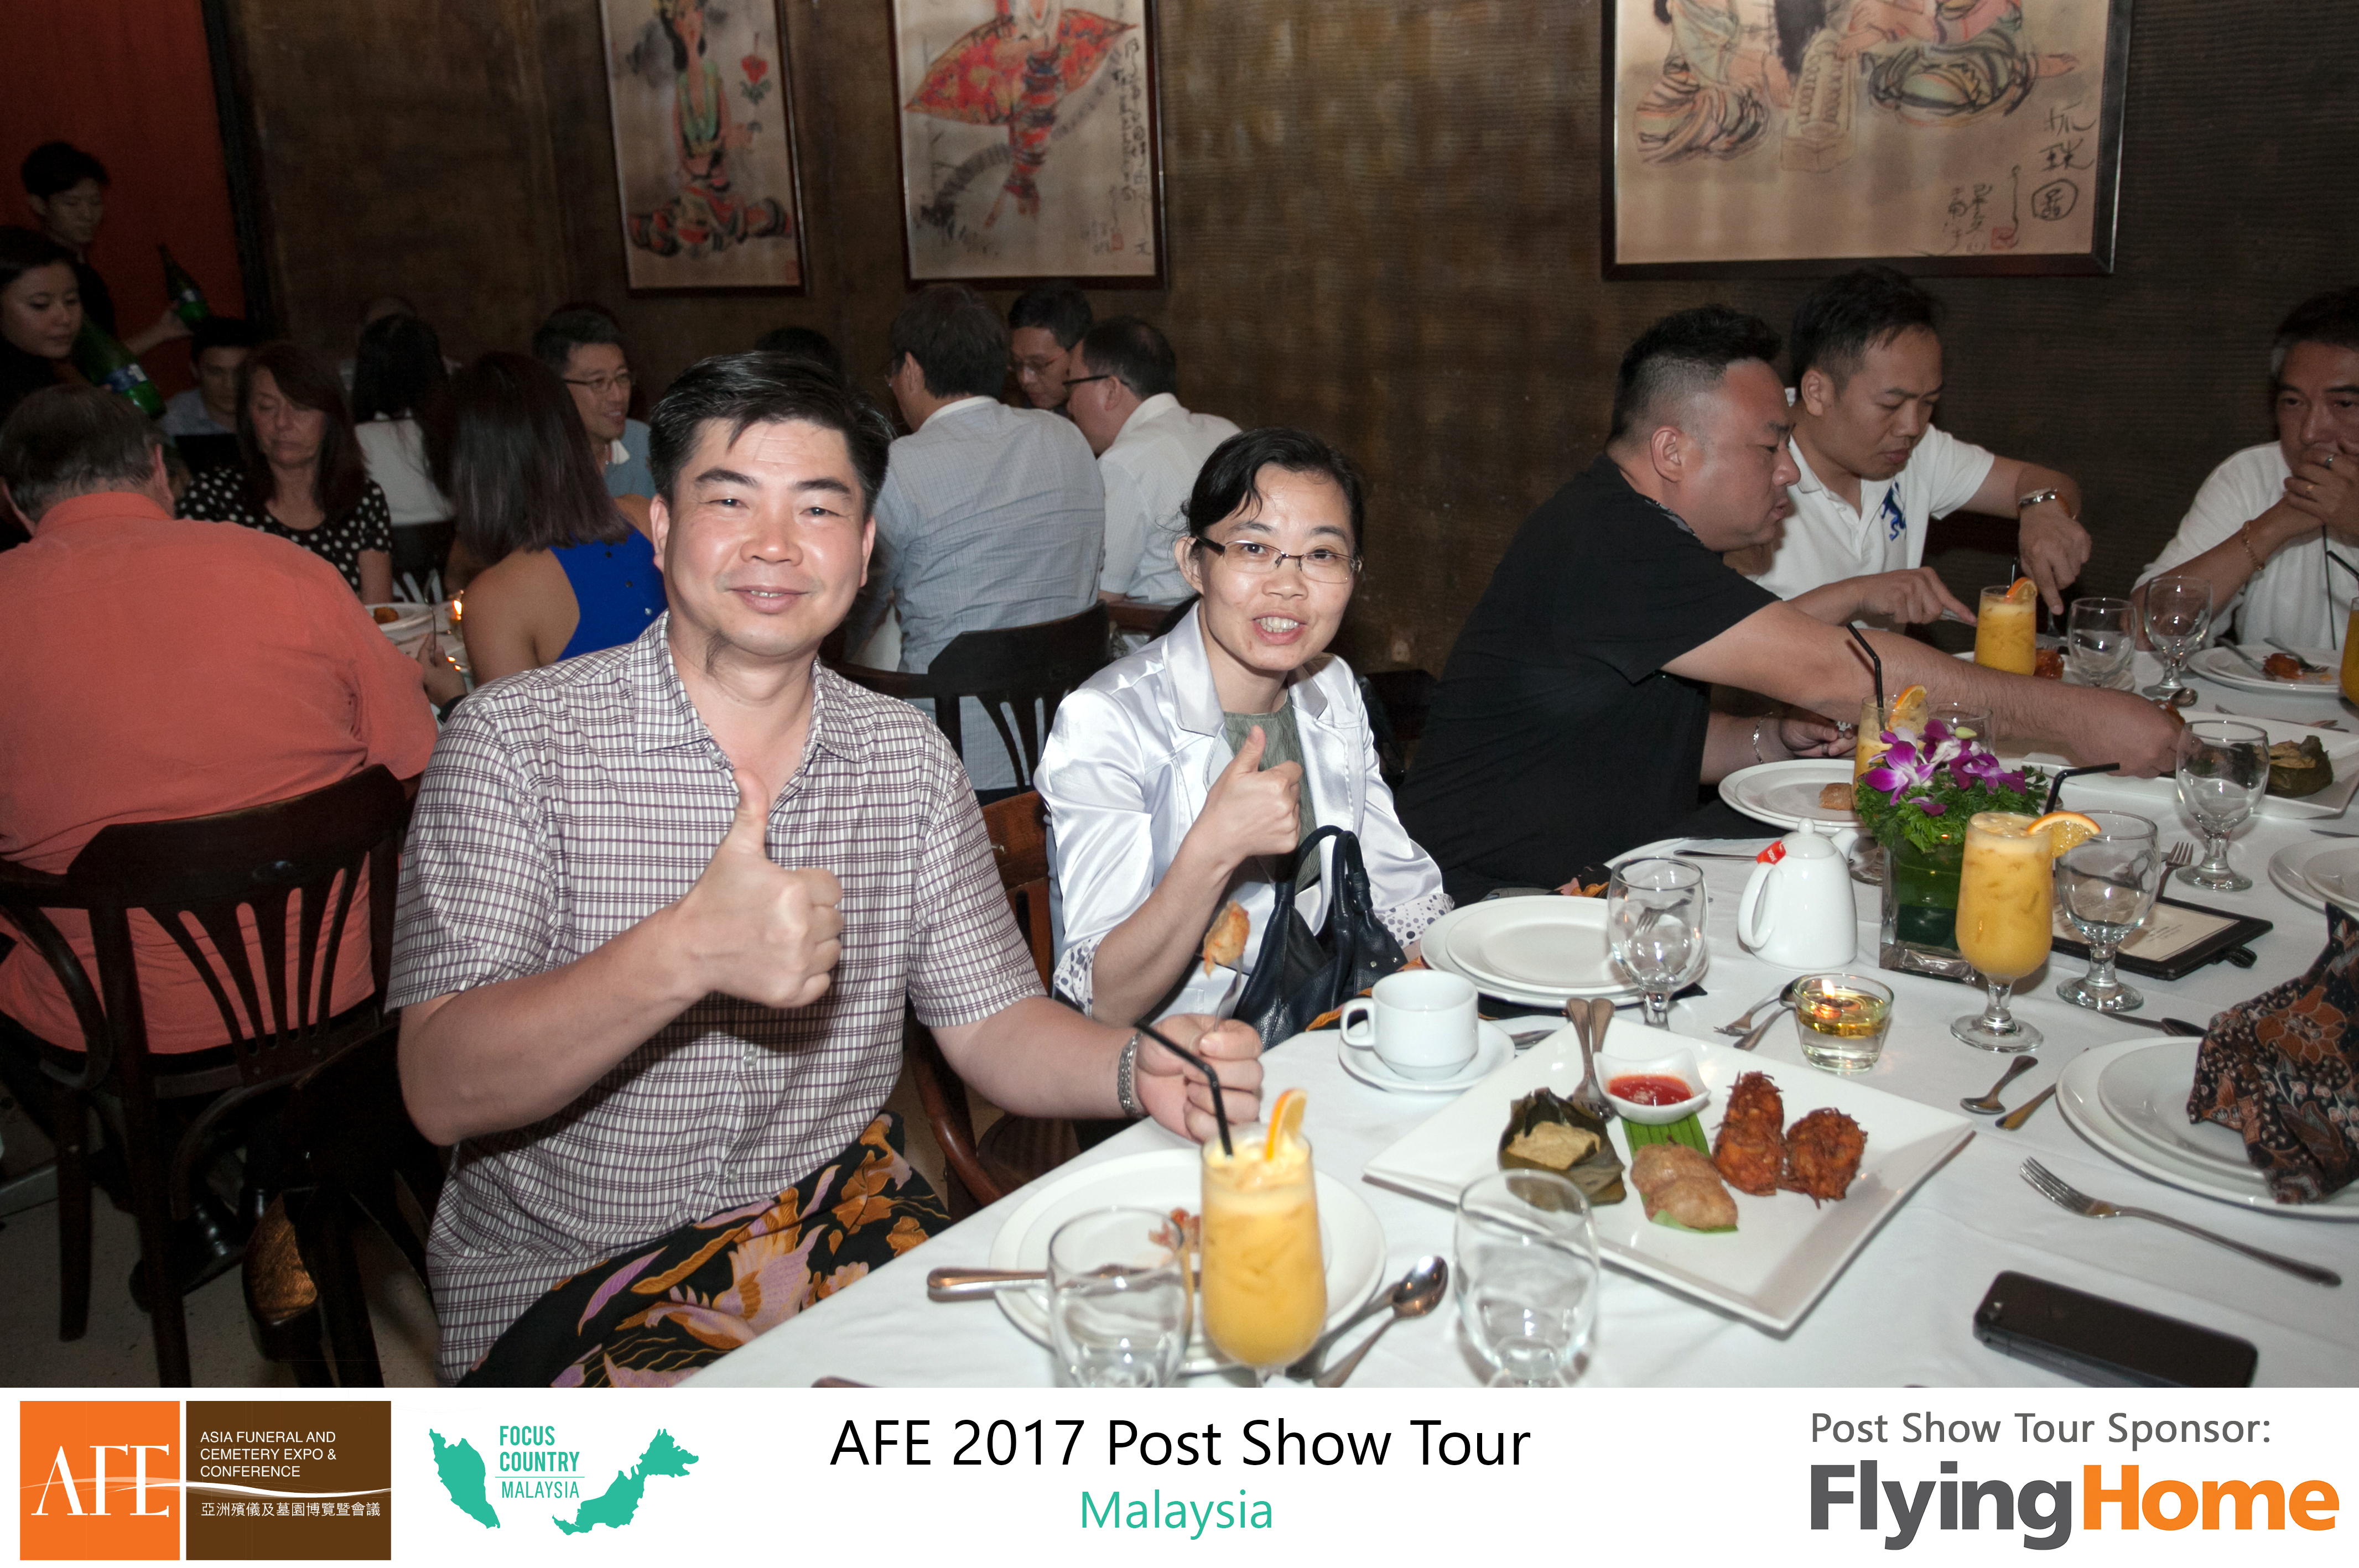 AFE Post Show Tour 2017 Day 3 -39